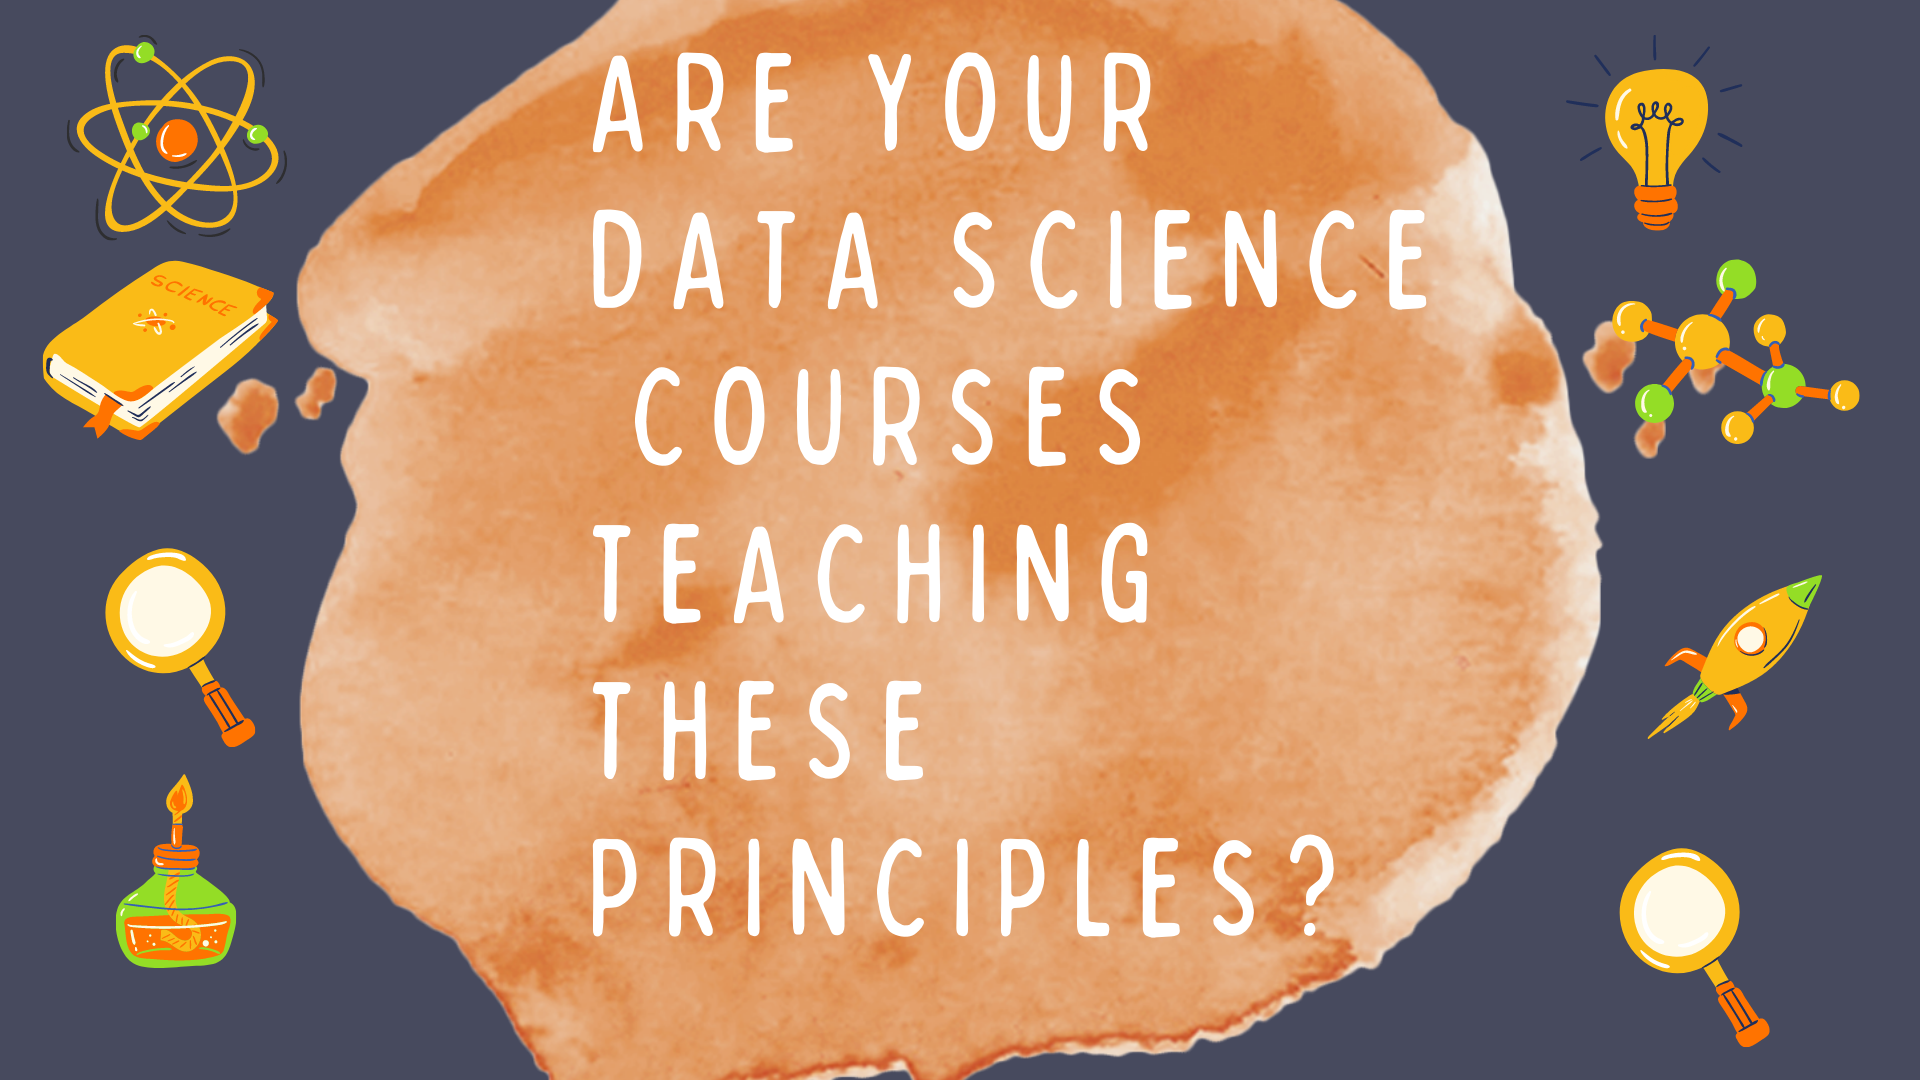 Are your data science courses teaching these?